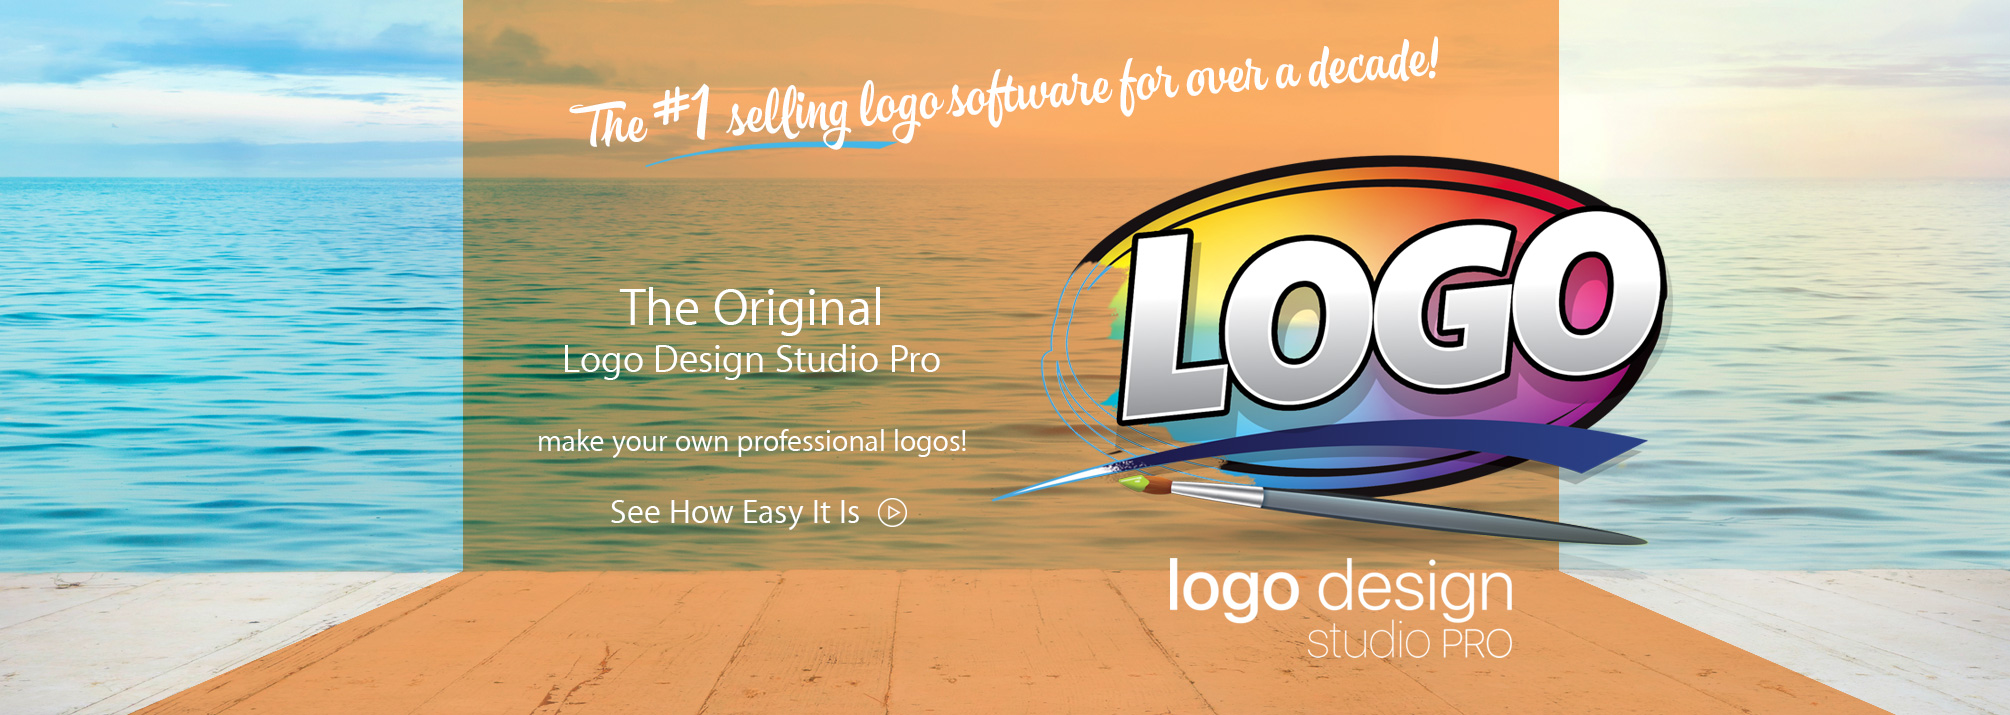 The Original Logo Design Studio Pro